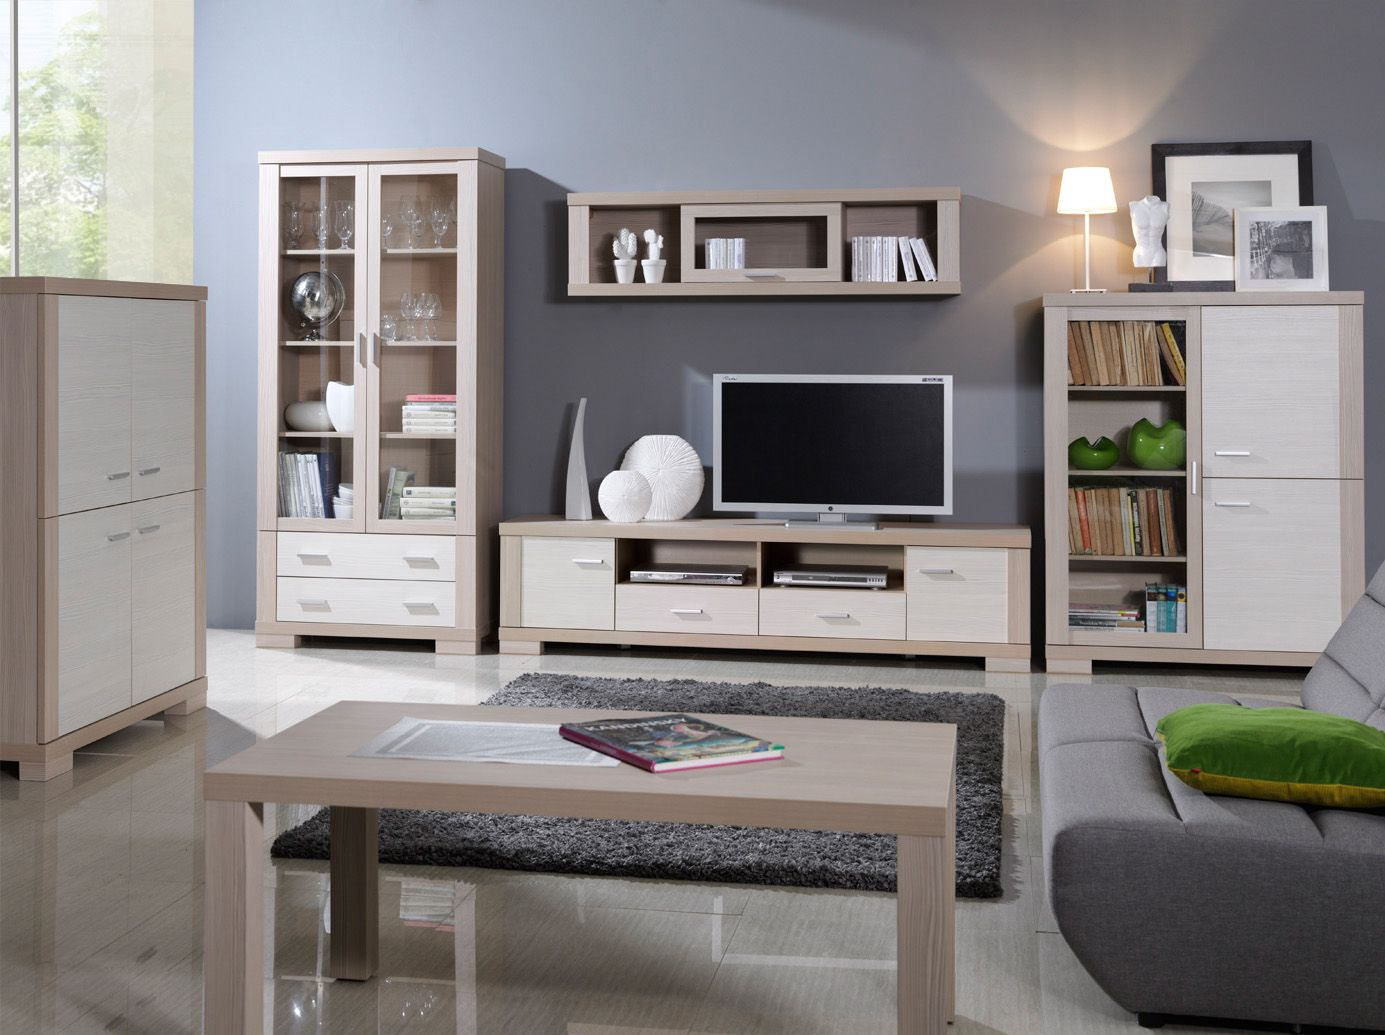 classique meuble tv meuble tv bois meuble tv en bois meuble tv chene meuble tv chene. Black Bedroom Furniture Sets. Home Design Ideas